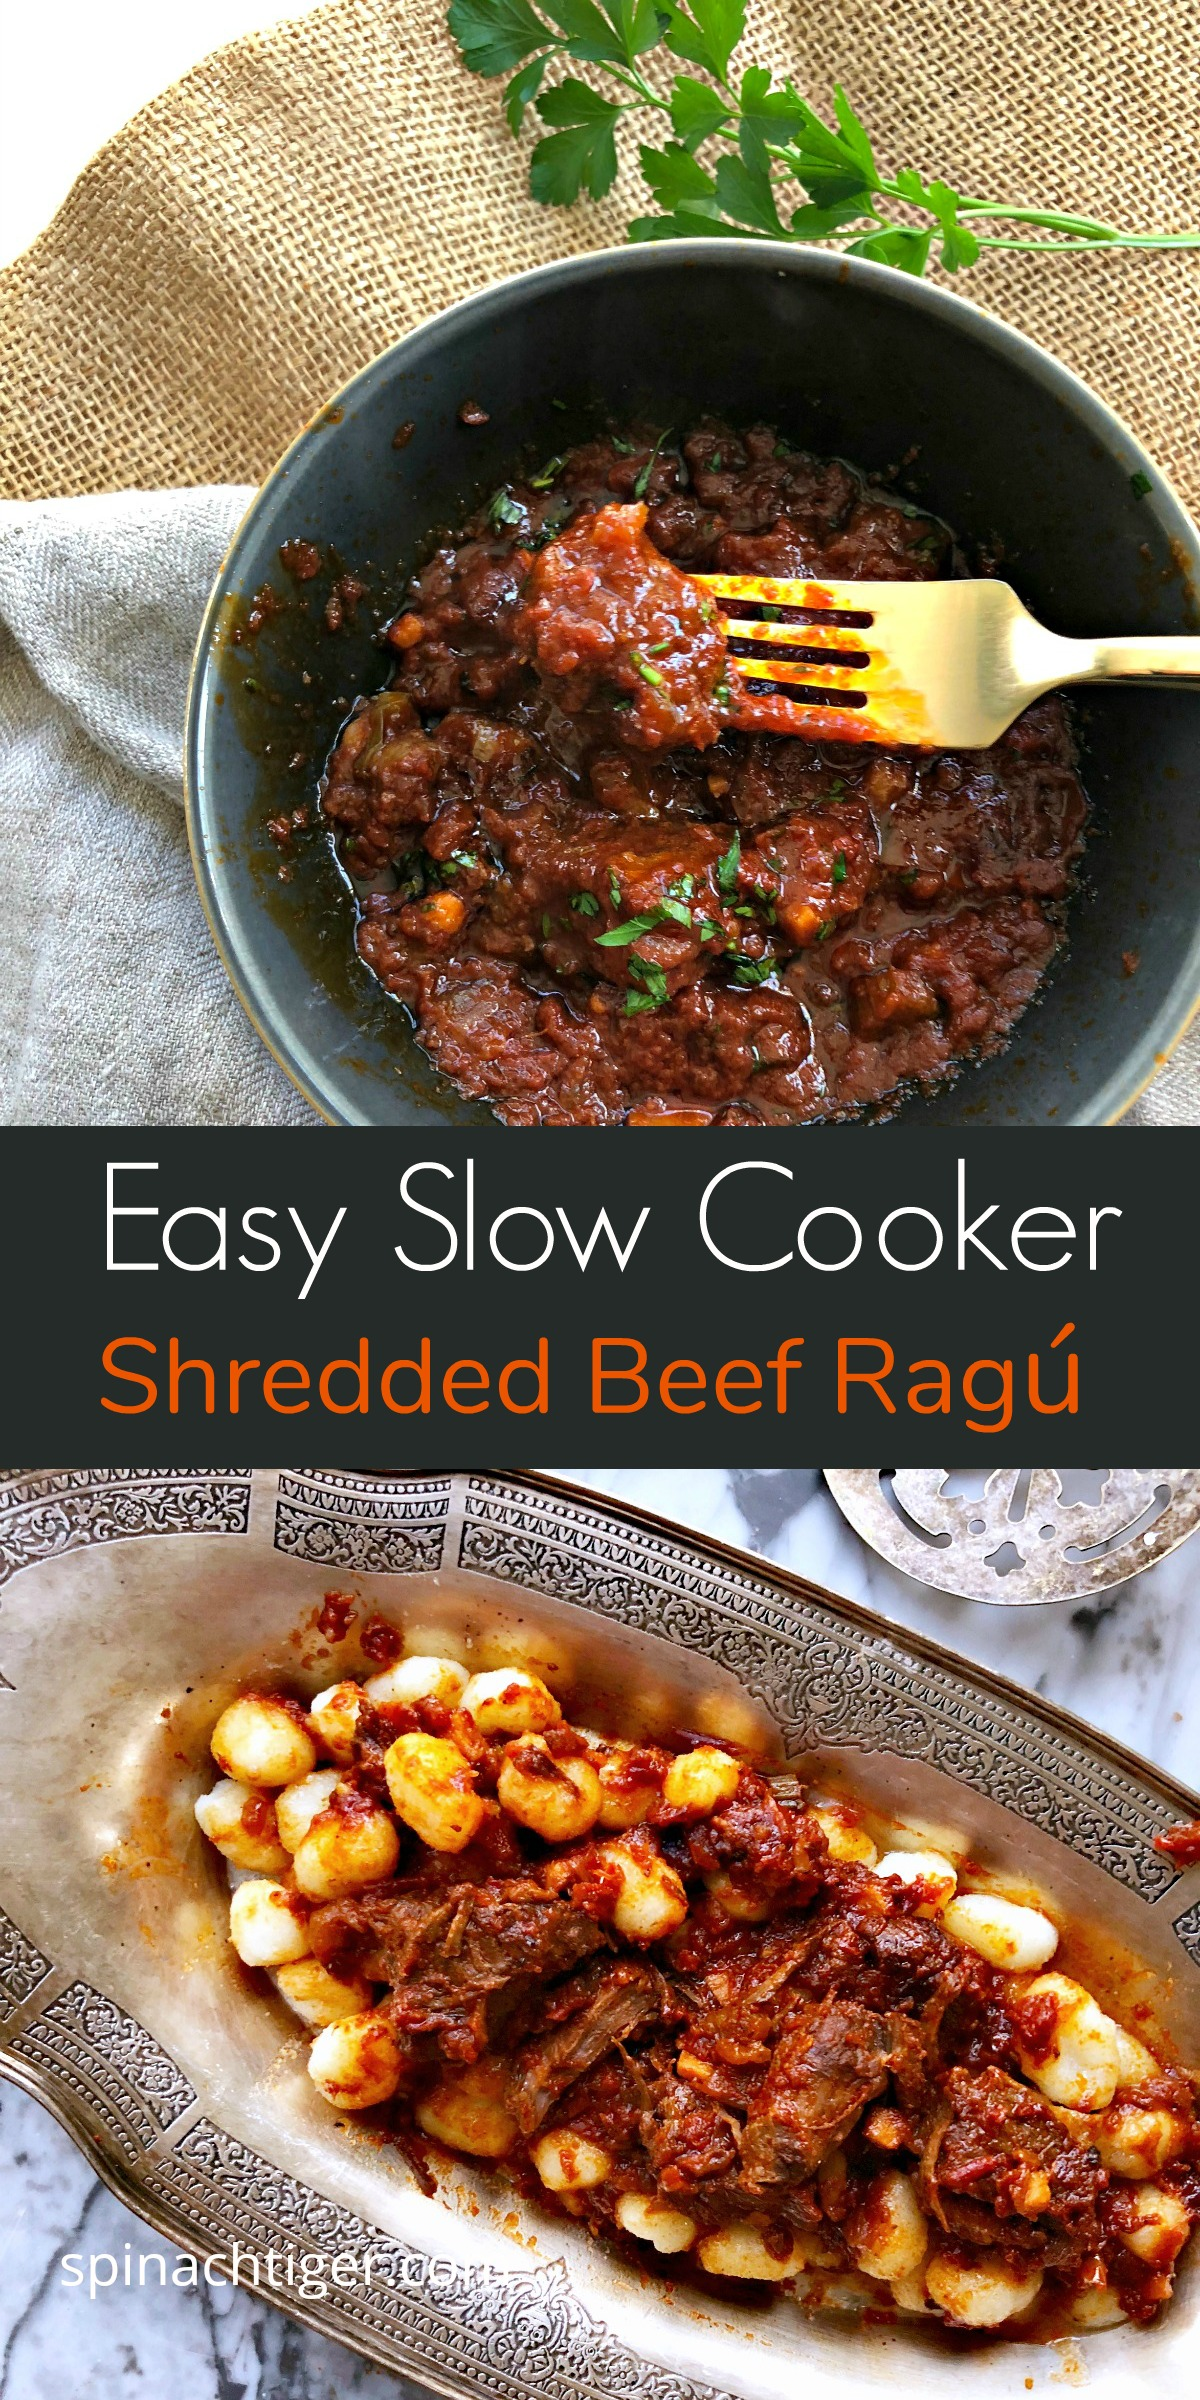 Easy, slow-cooker beef ragu made with cheap beef cubes, and a can of tomatoes. Fall apart beef can be served over potatoes, pasta, veggies or polenta. #spinachtiger #beefcubesrecipes #shreddedbeef #slowcookerbeef via @angelaroberts